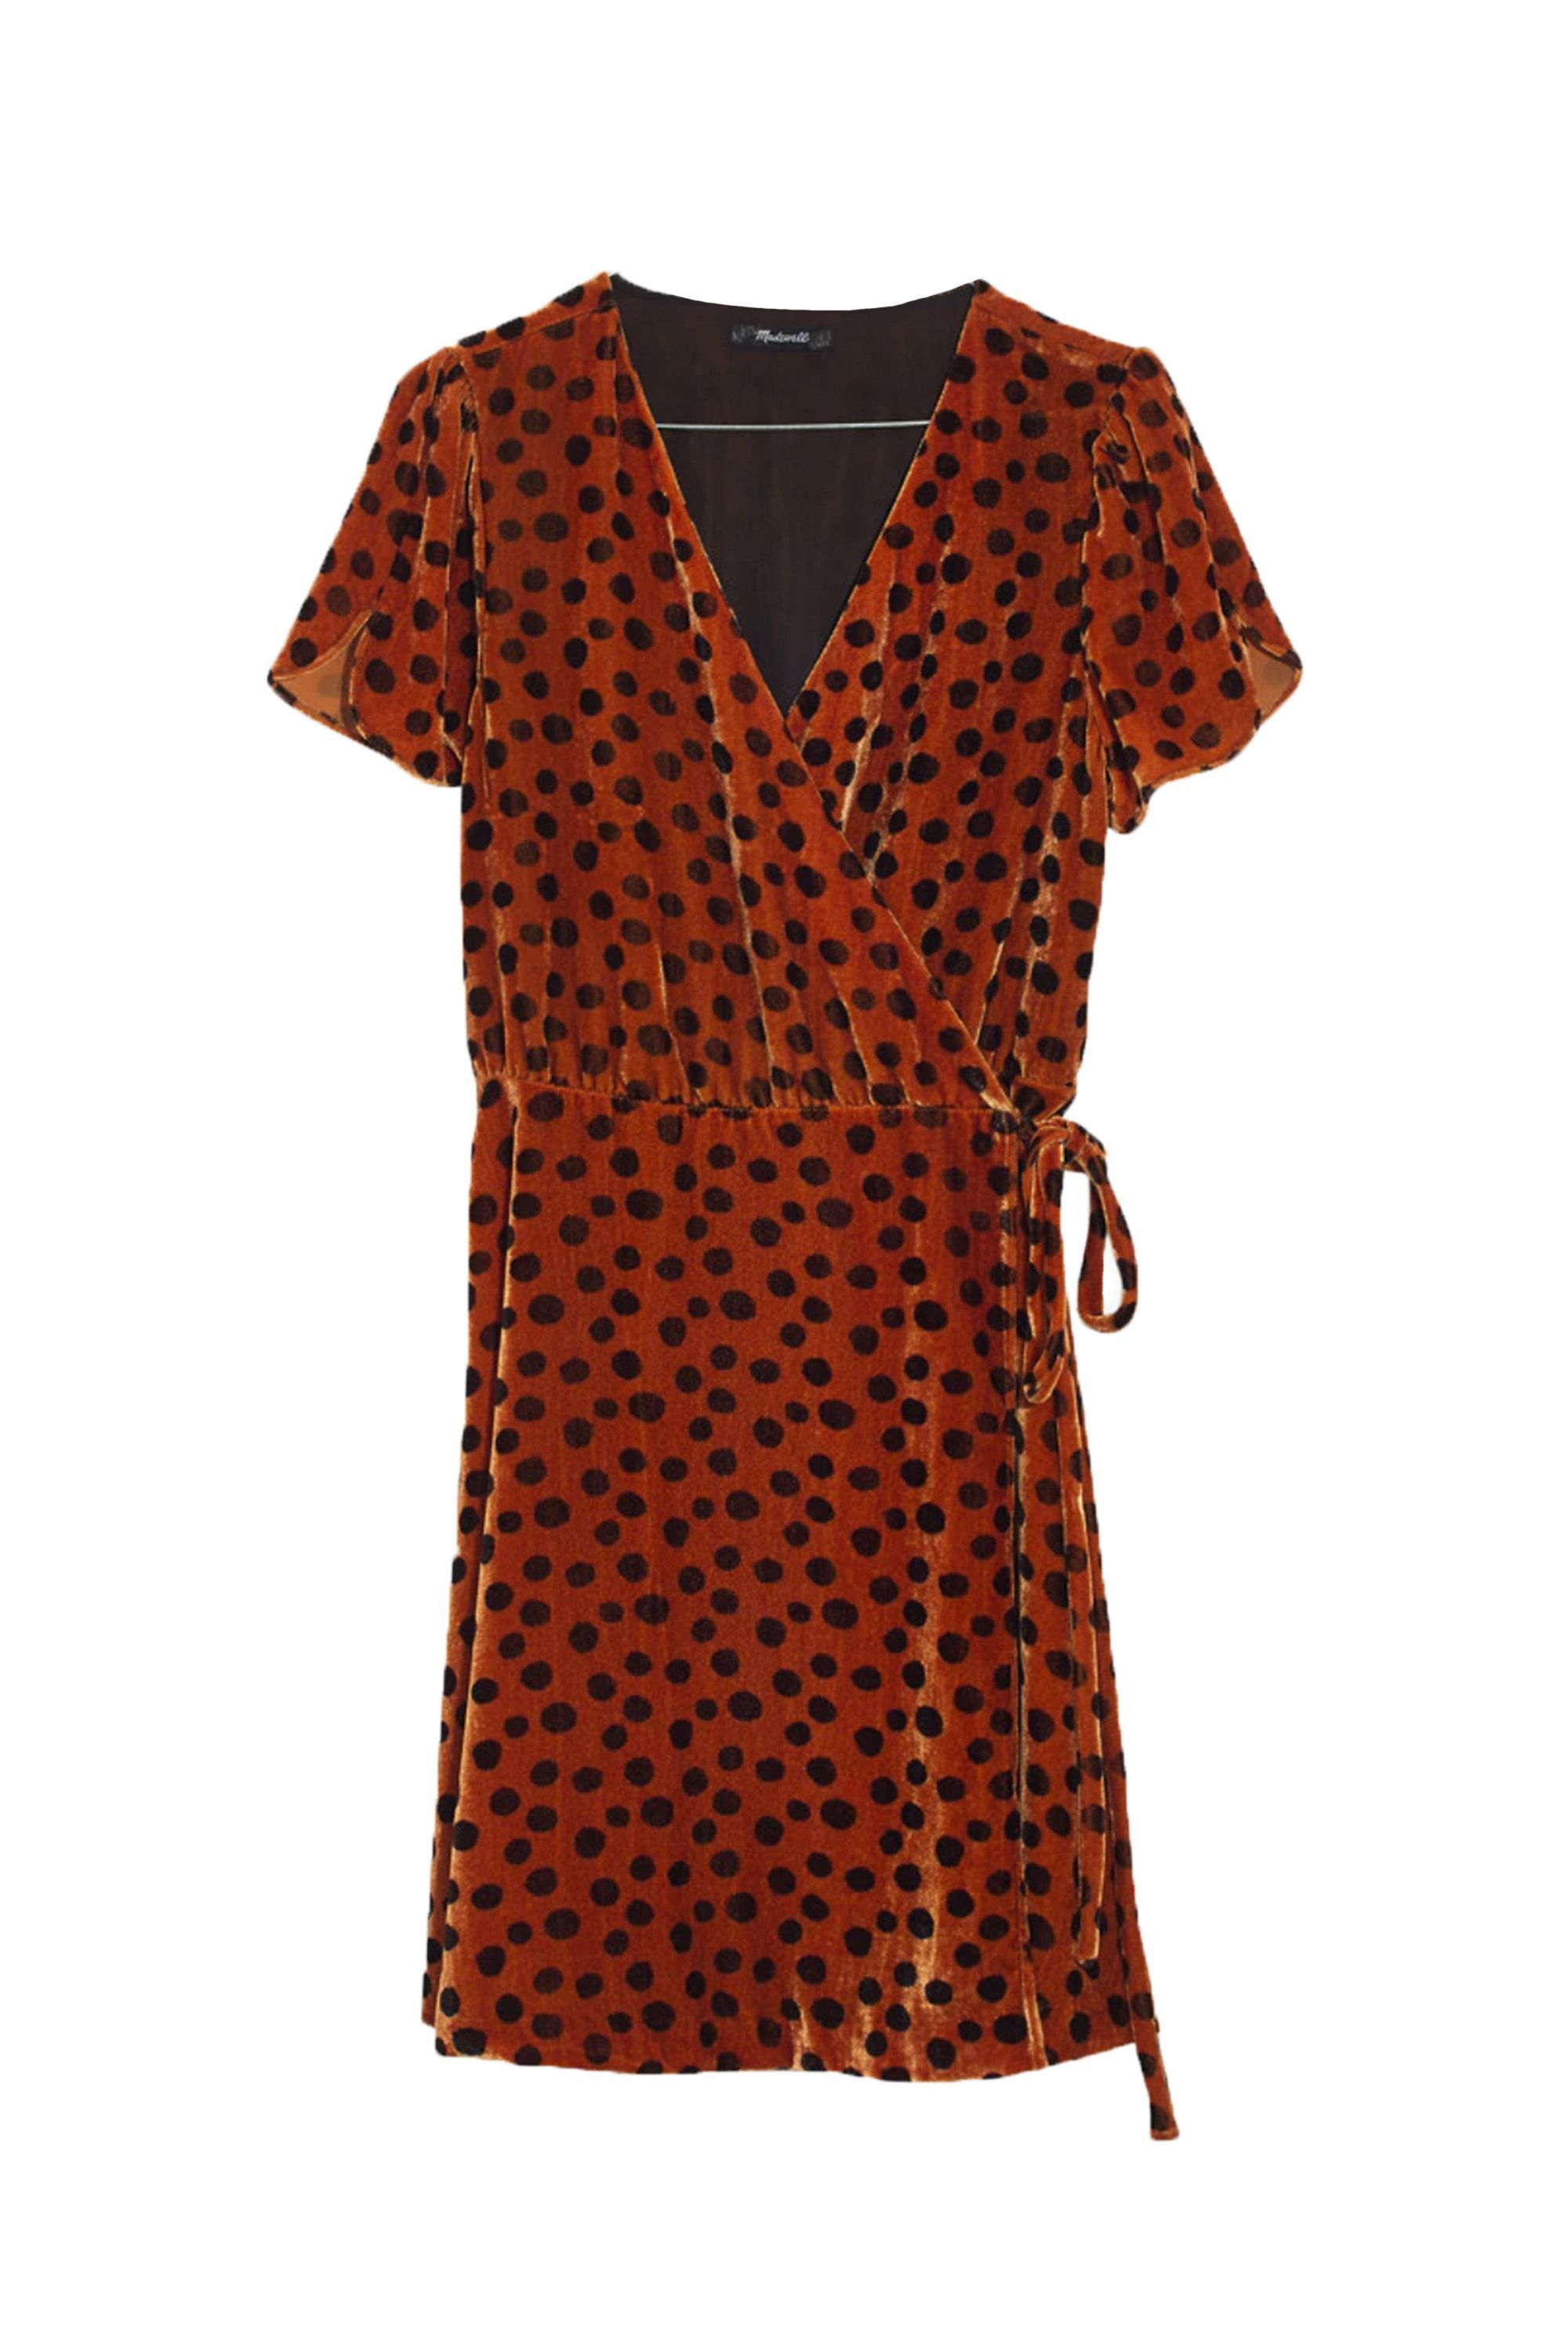 Velvet Wrap Dress Madewell madewell.com $89.99 SHOP NOW How good will this look with platform sandals?